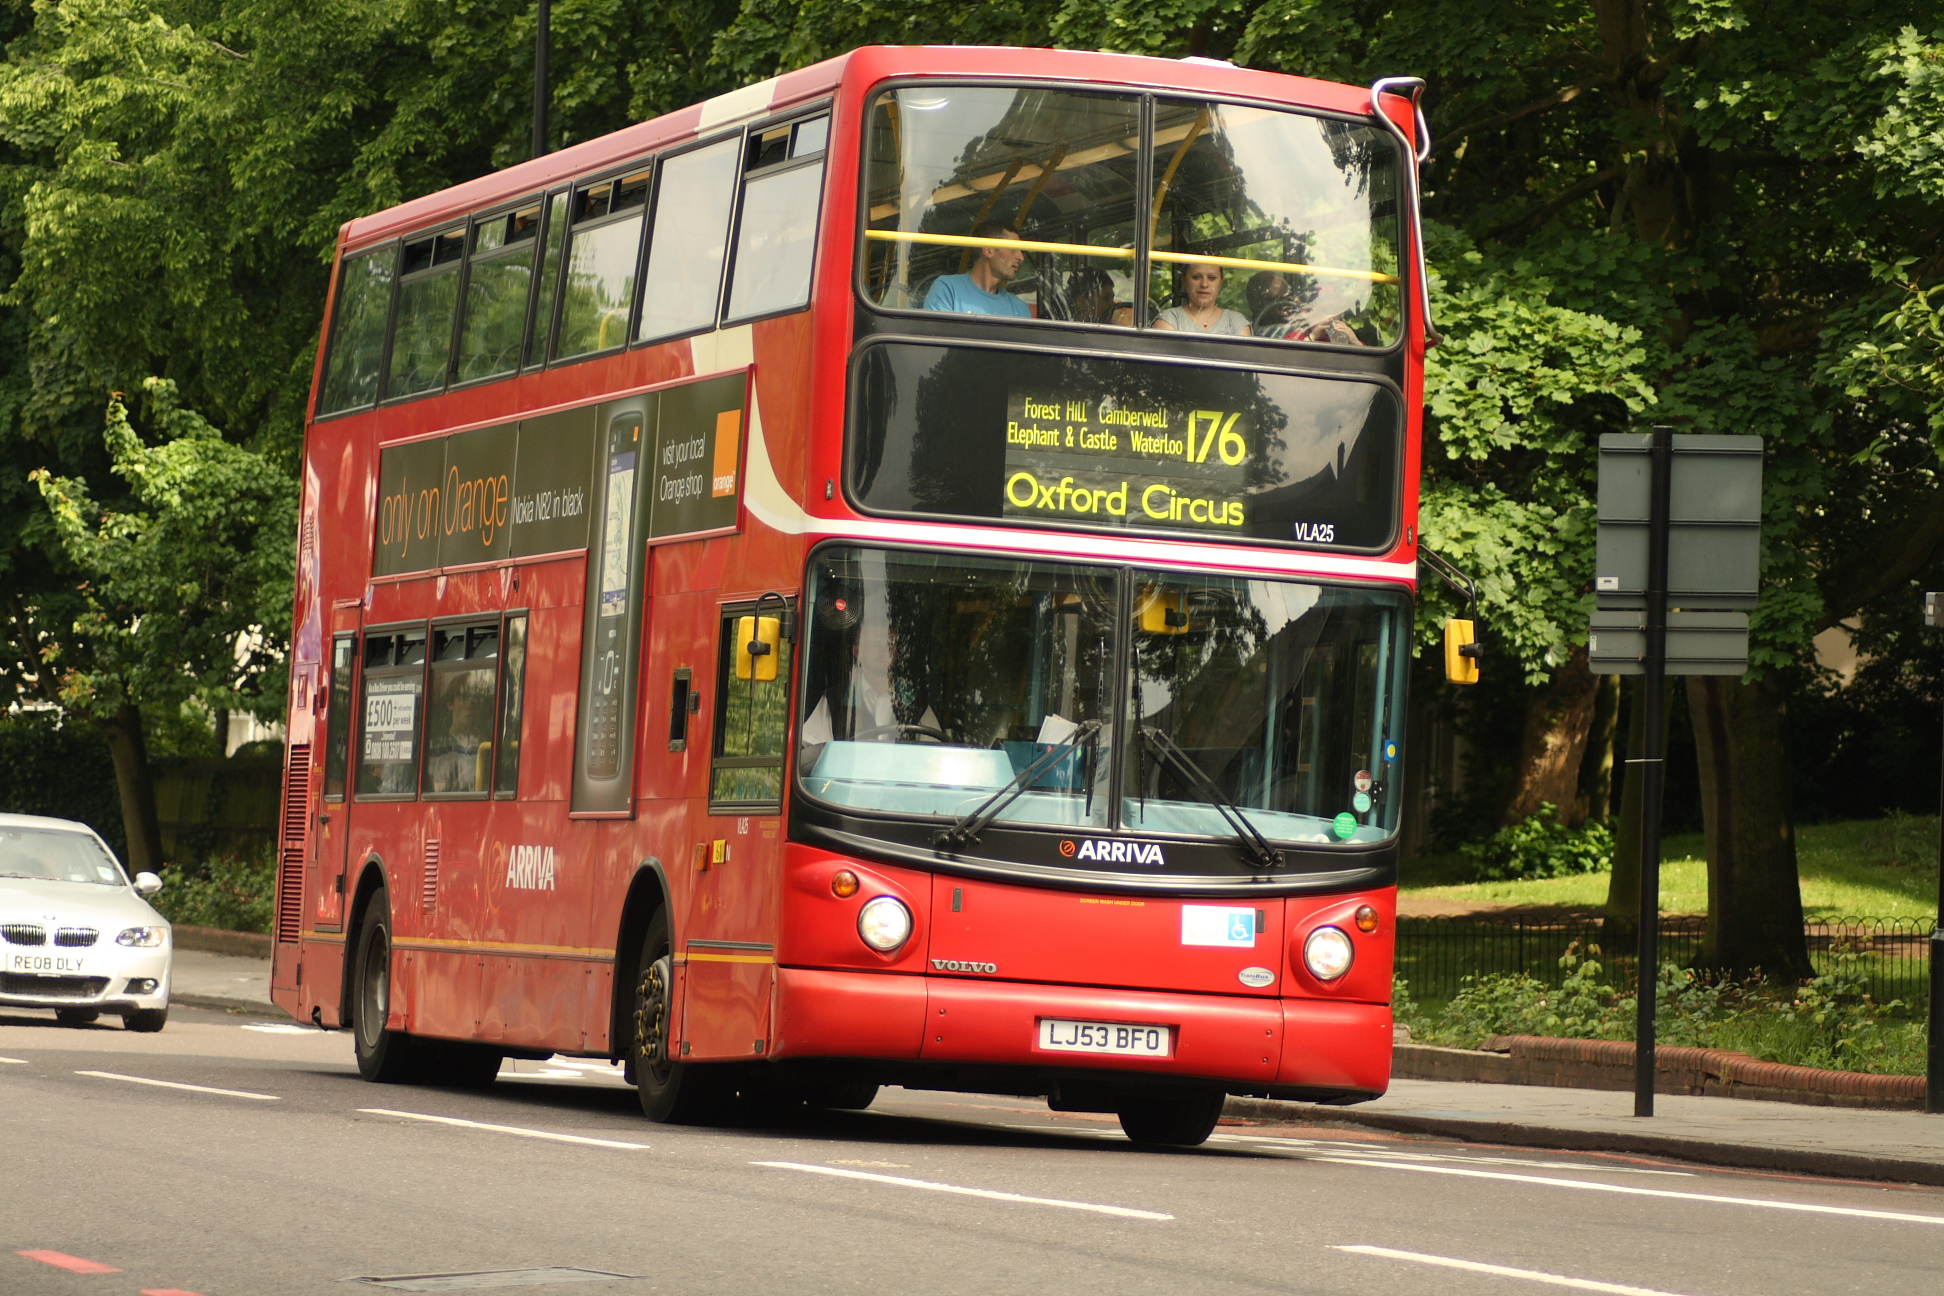 File:London Bus route 176.jpg